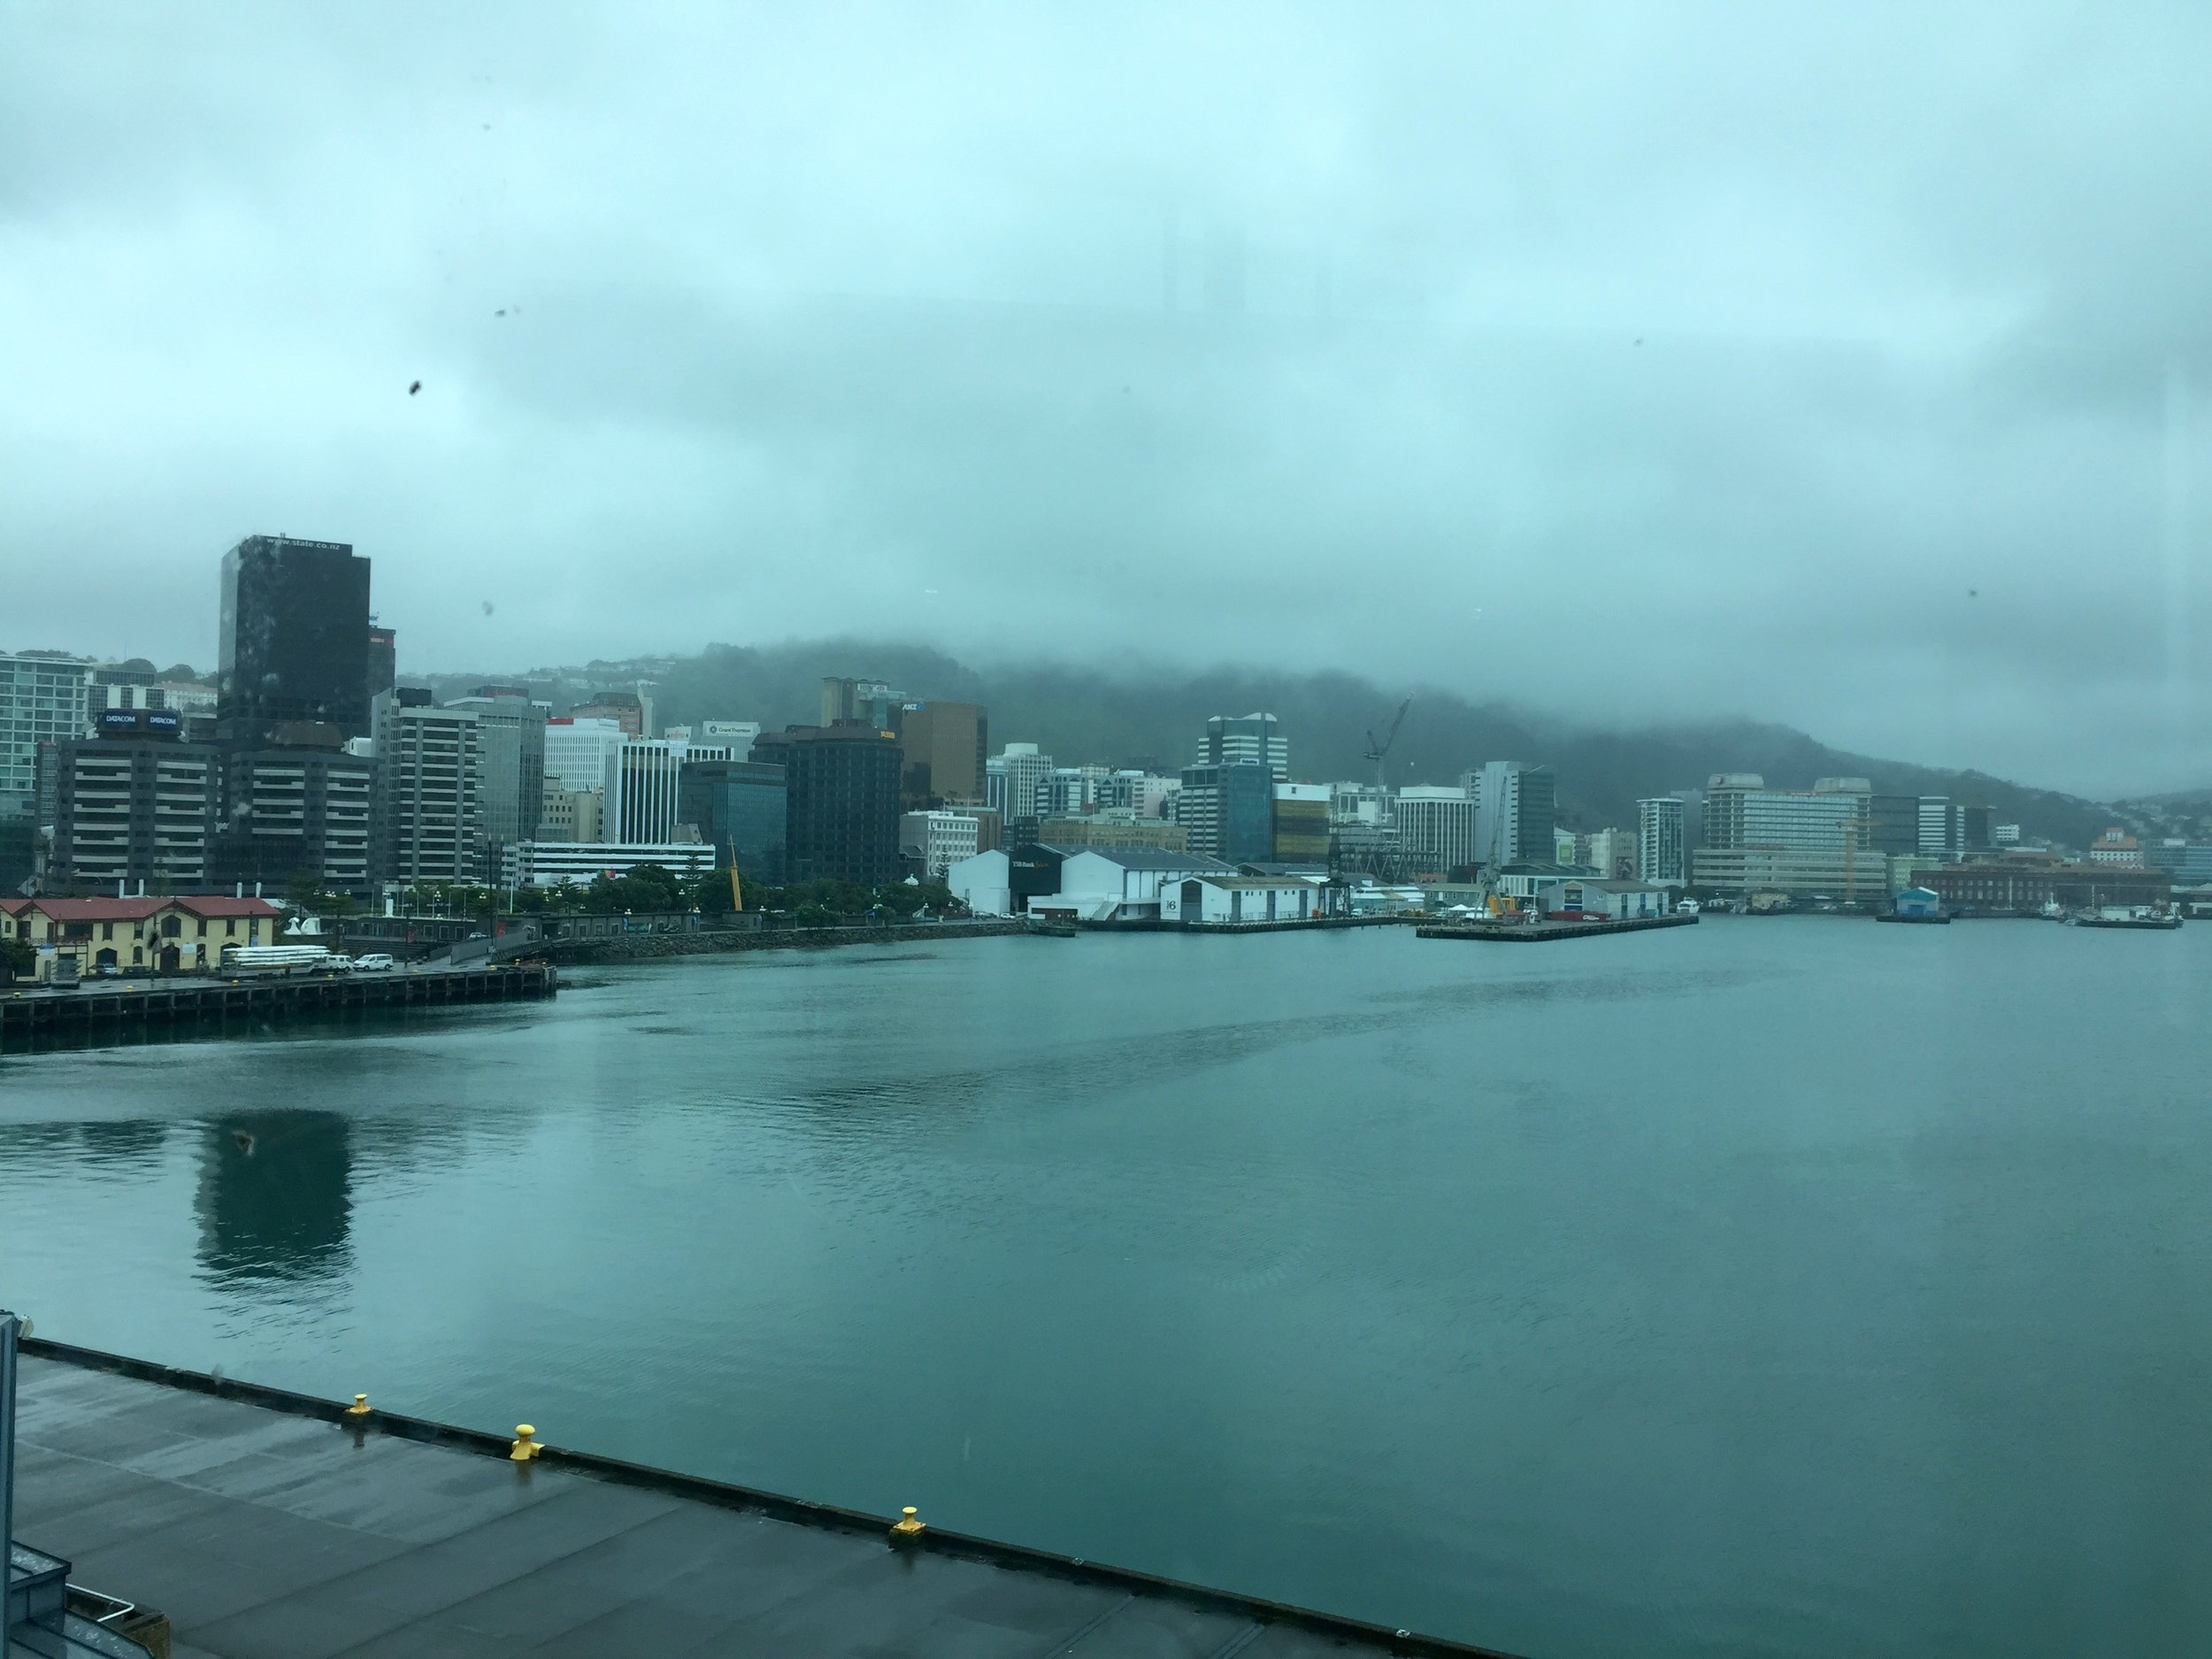 Wellington. The weather's often inclement! But it's still a beautiful city.